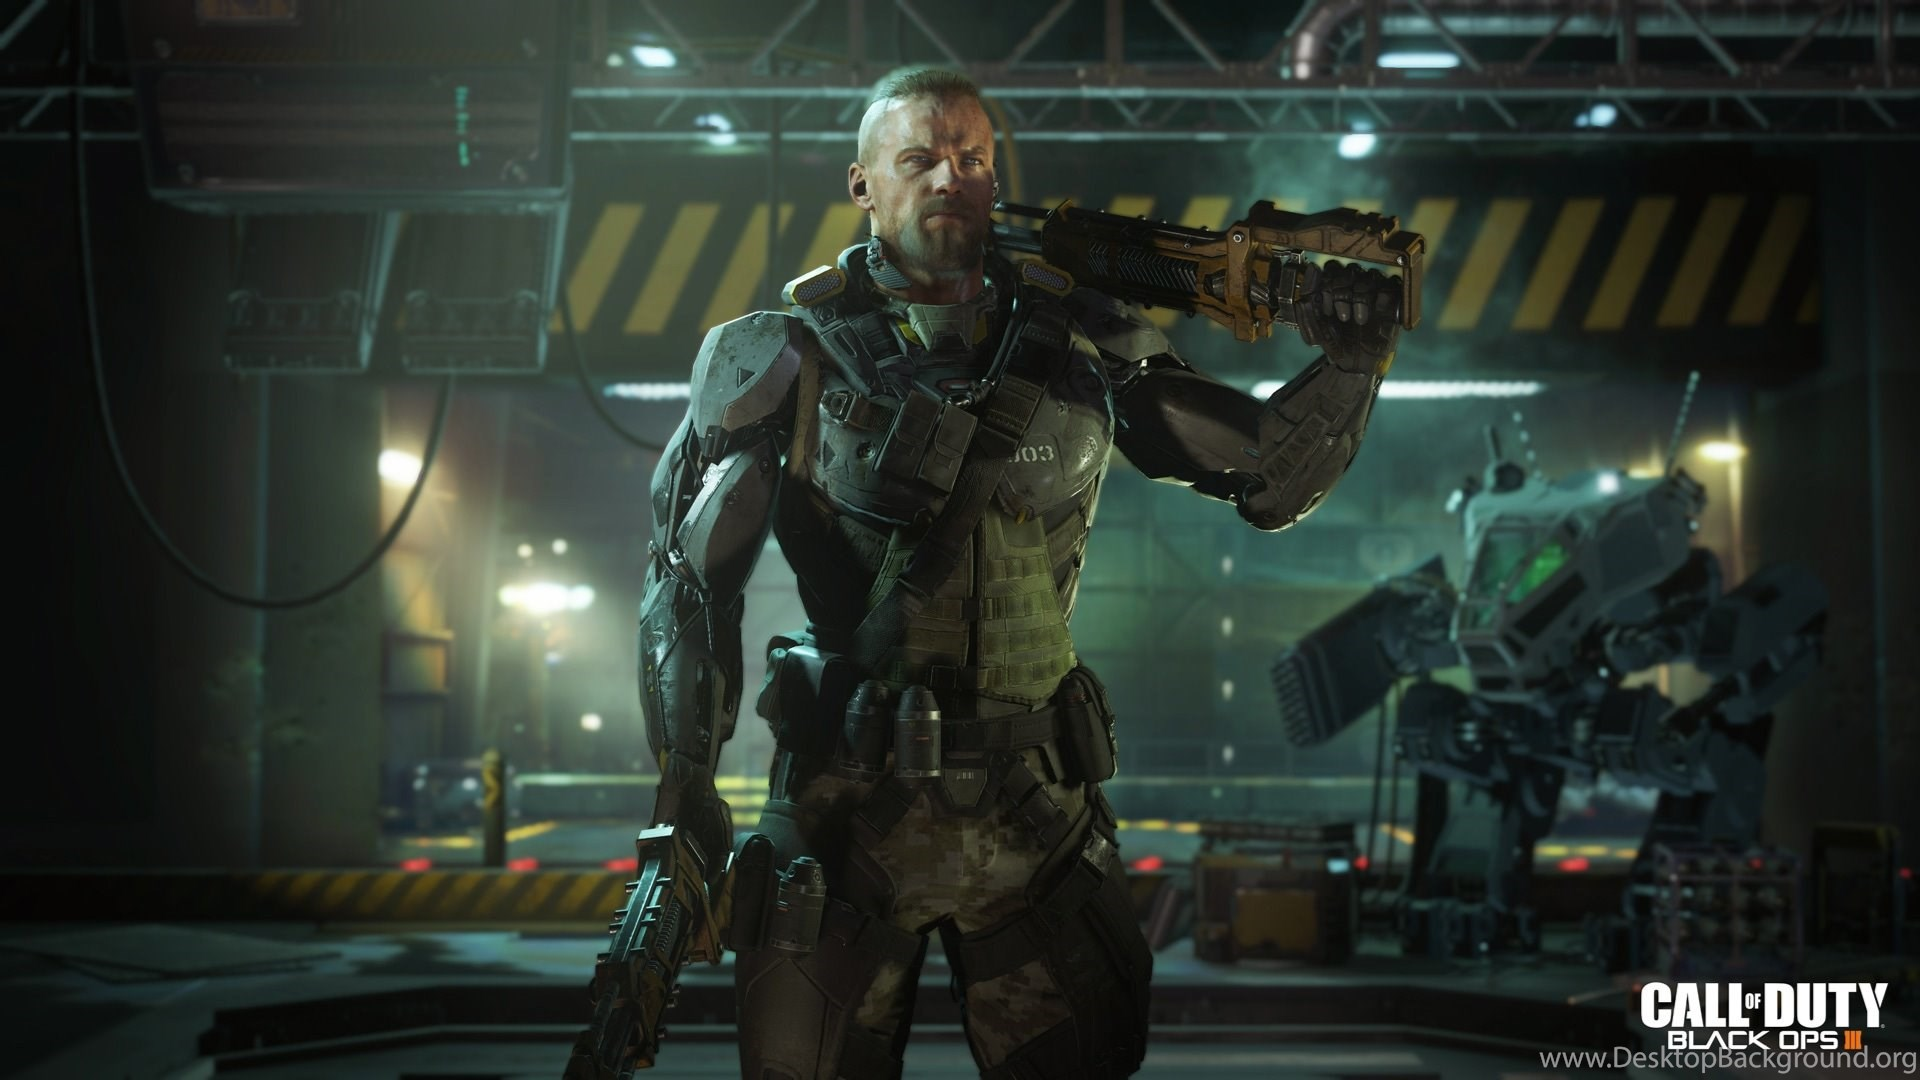 Call Of Duty Black Ops 3 Update 1 05 Is Live For Ps4 Requires 9